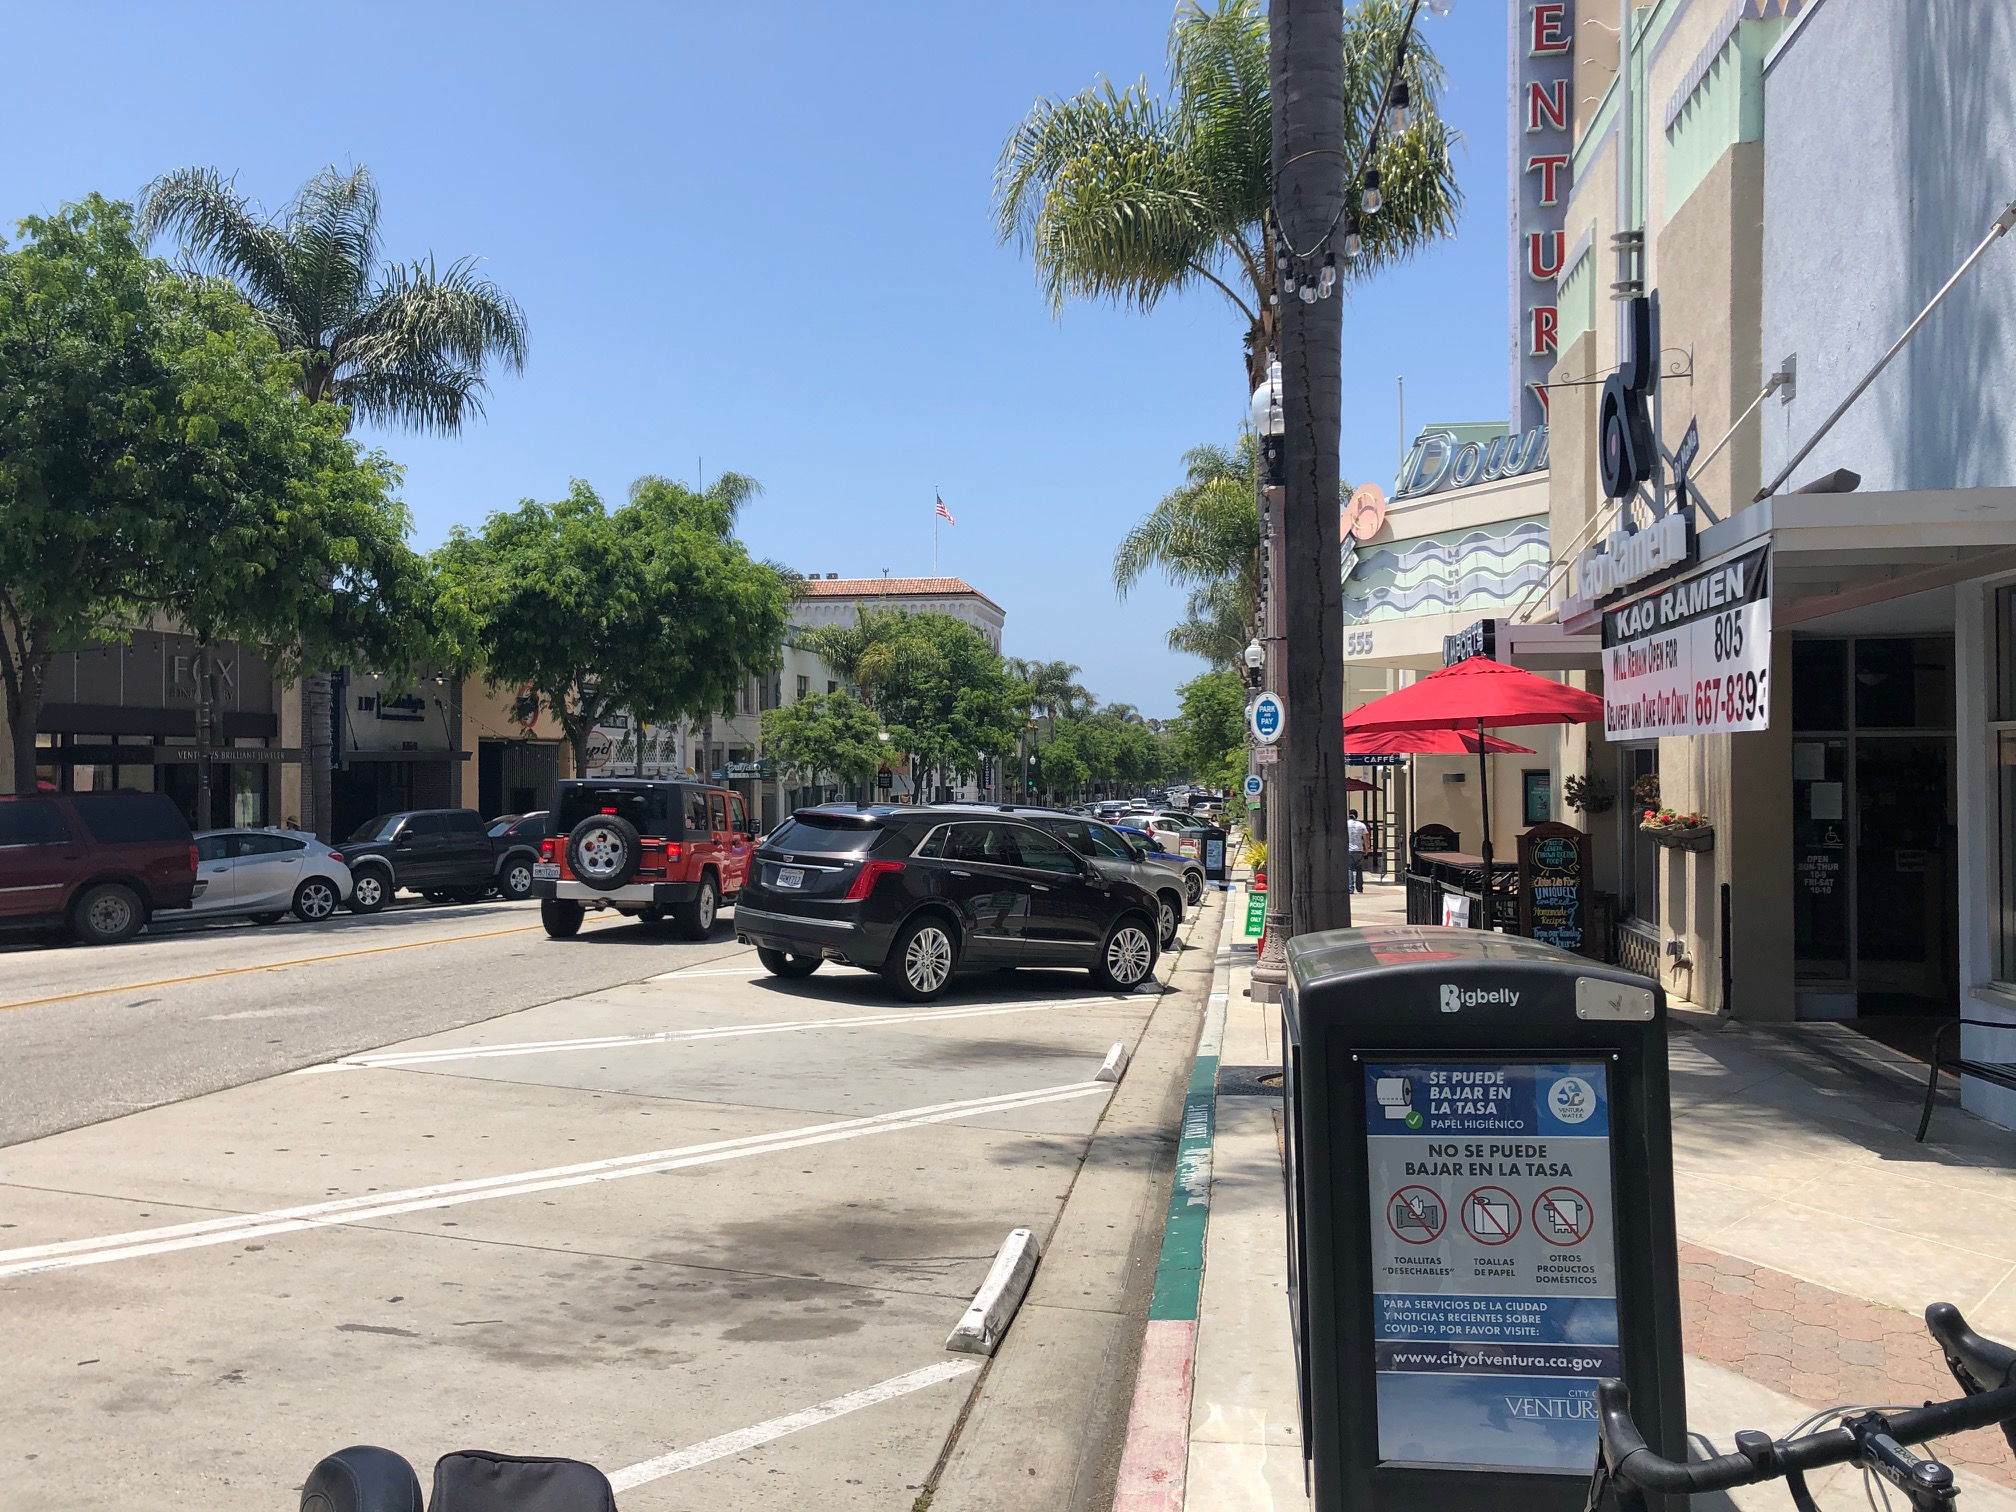 Downtown Ventura taking local businesses to the streets